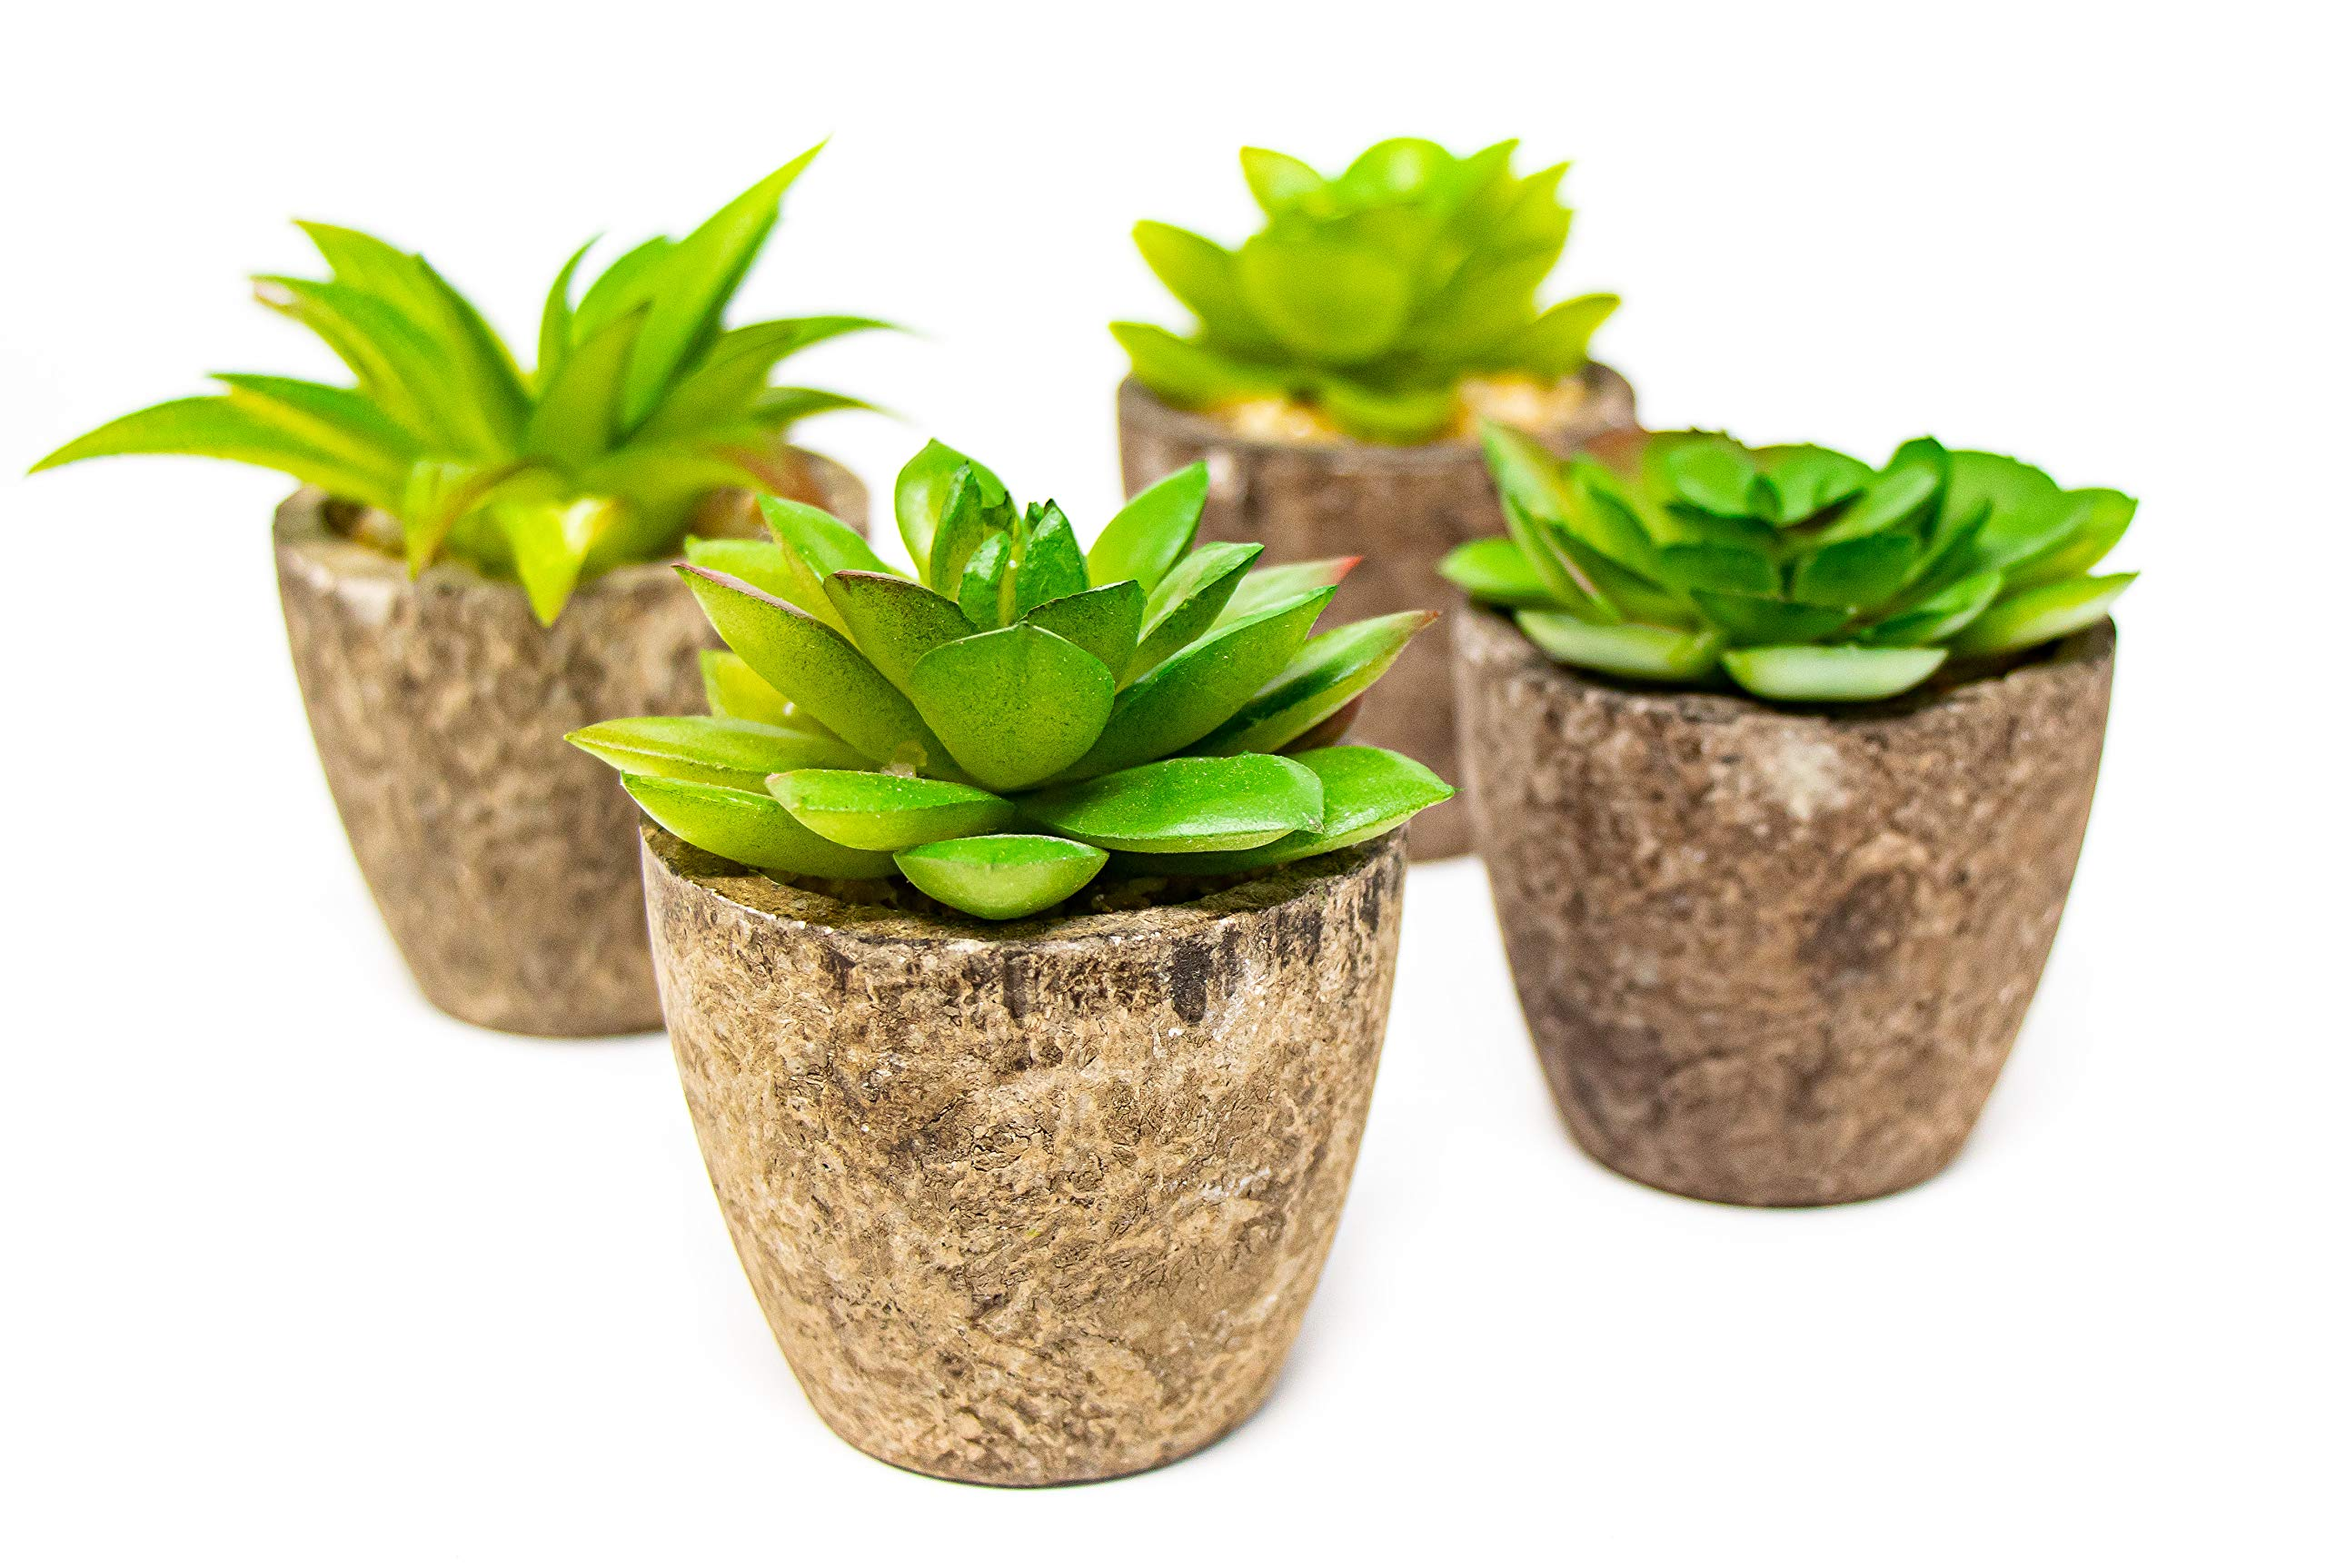 Artificial Succulent Plants Set - Set of 4, Fake Potted Succulents, Mini Faux Assorted Planters, Decorative Plant, Mini Lifelike Assorted Green Faux Succulents- Perfect Indoor and Outdoor Ornaments